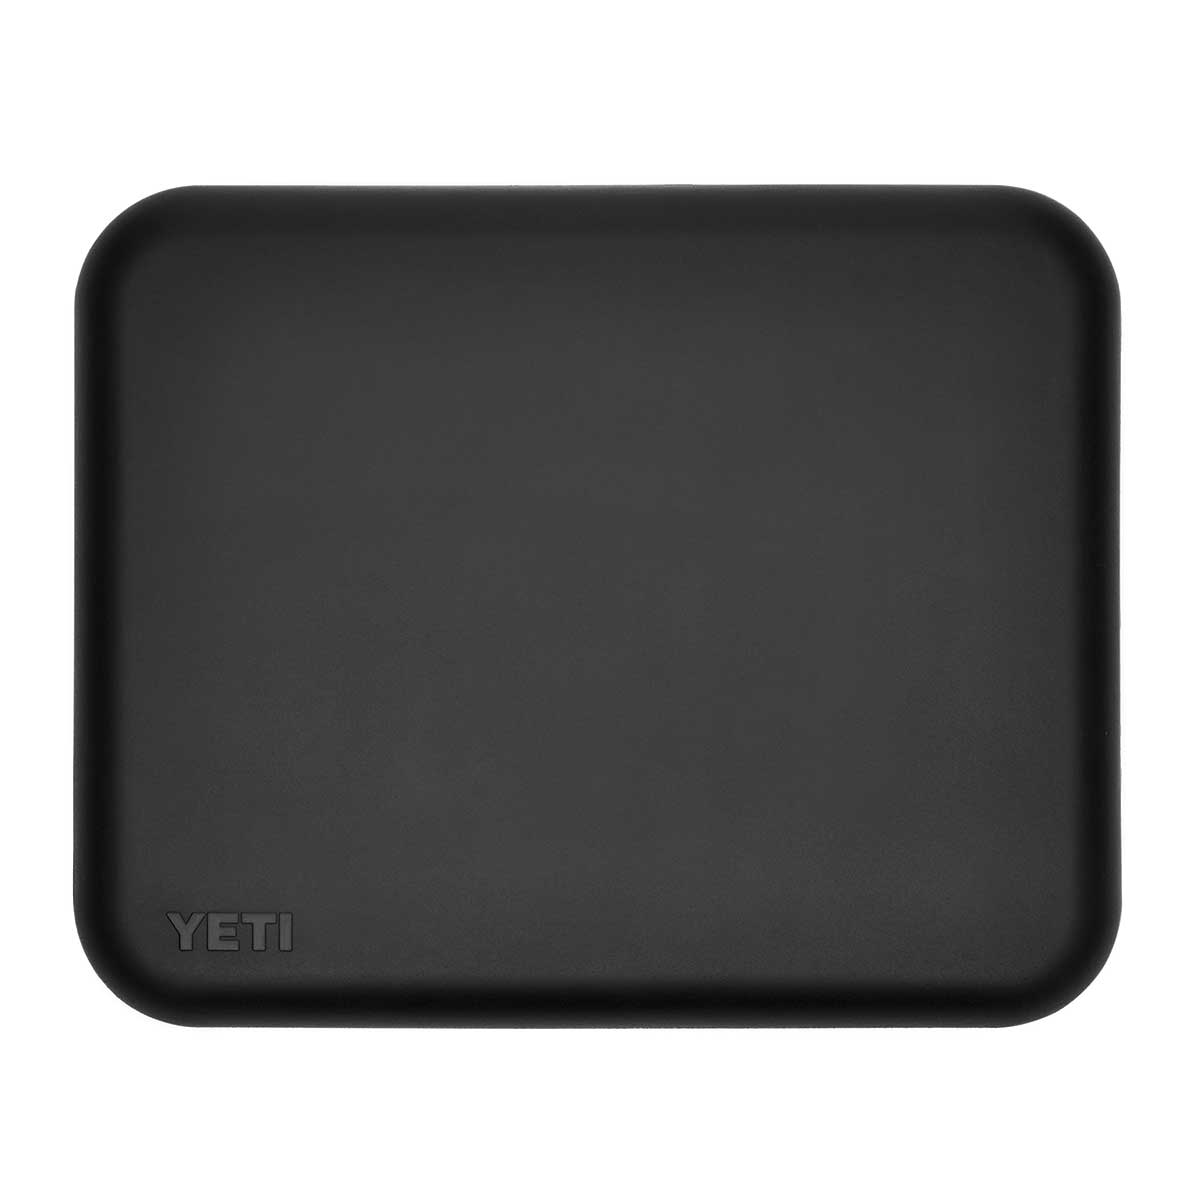 YETI Roadie 24 Seat Cushion